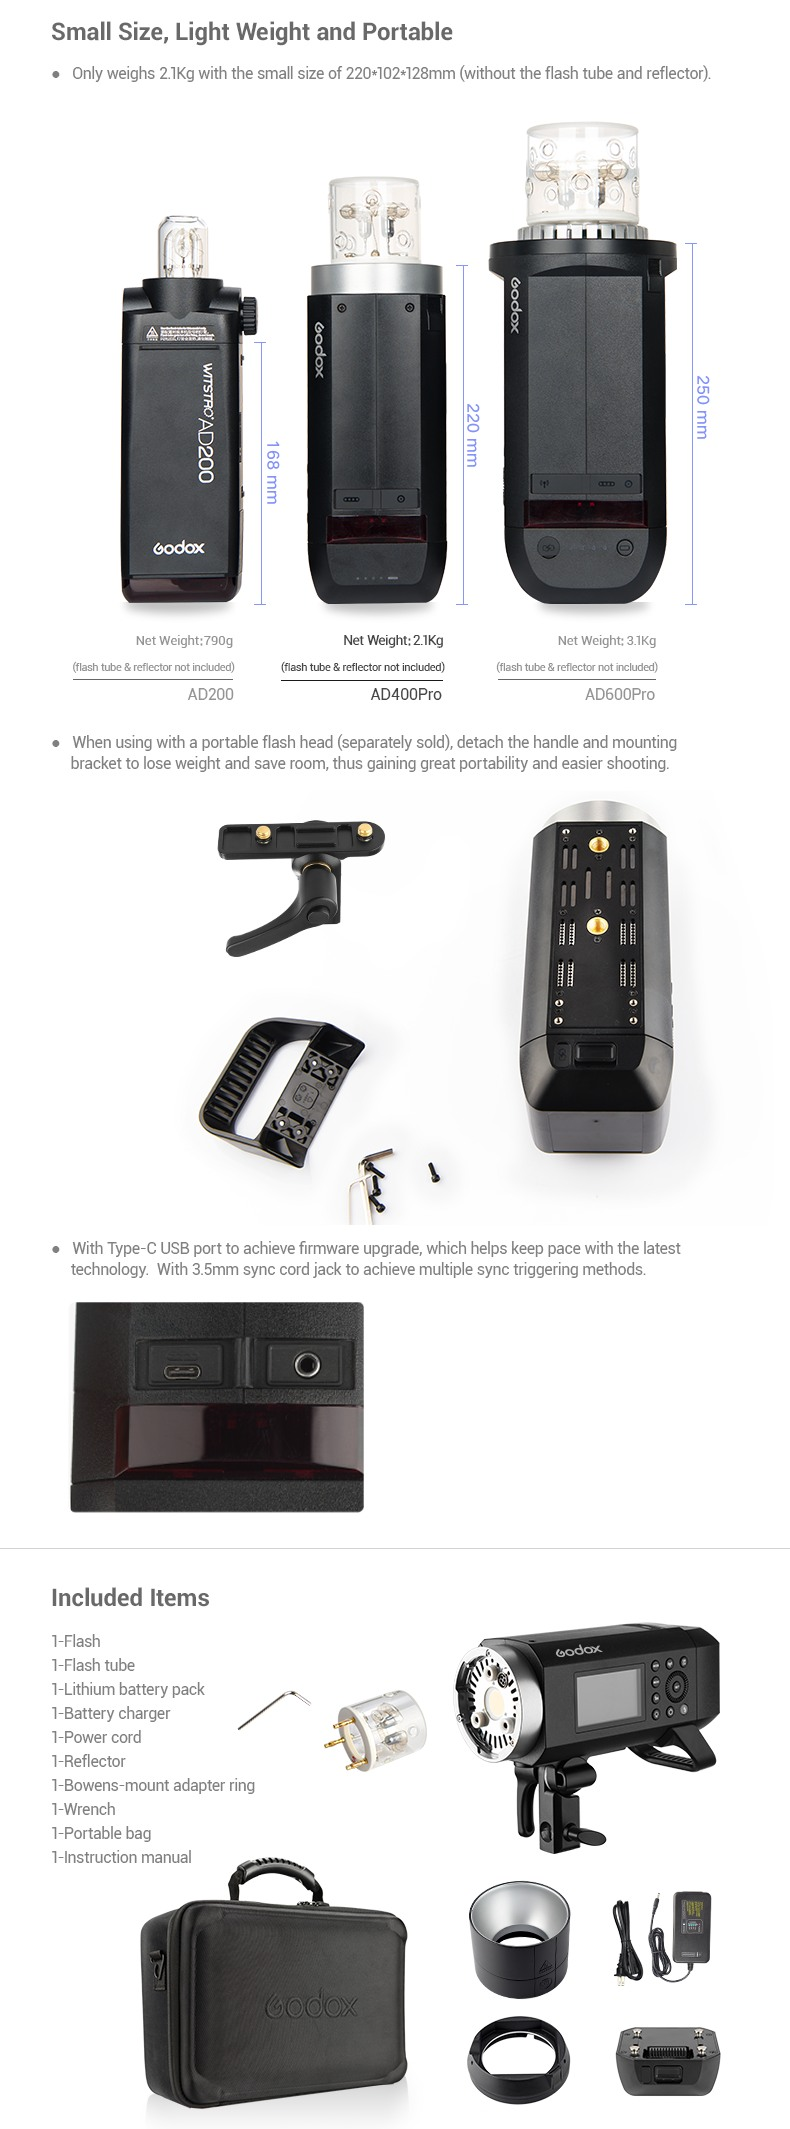 Godox AD400Pro Small sizes, Lightweight and portable. Included items.